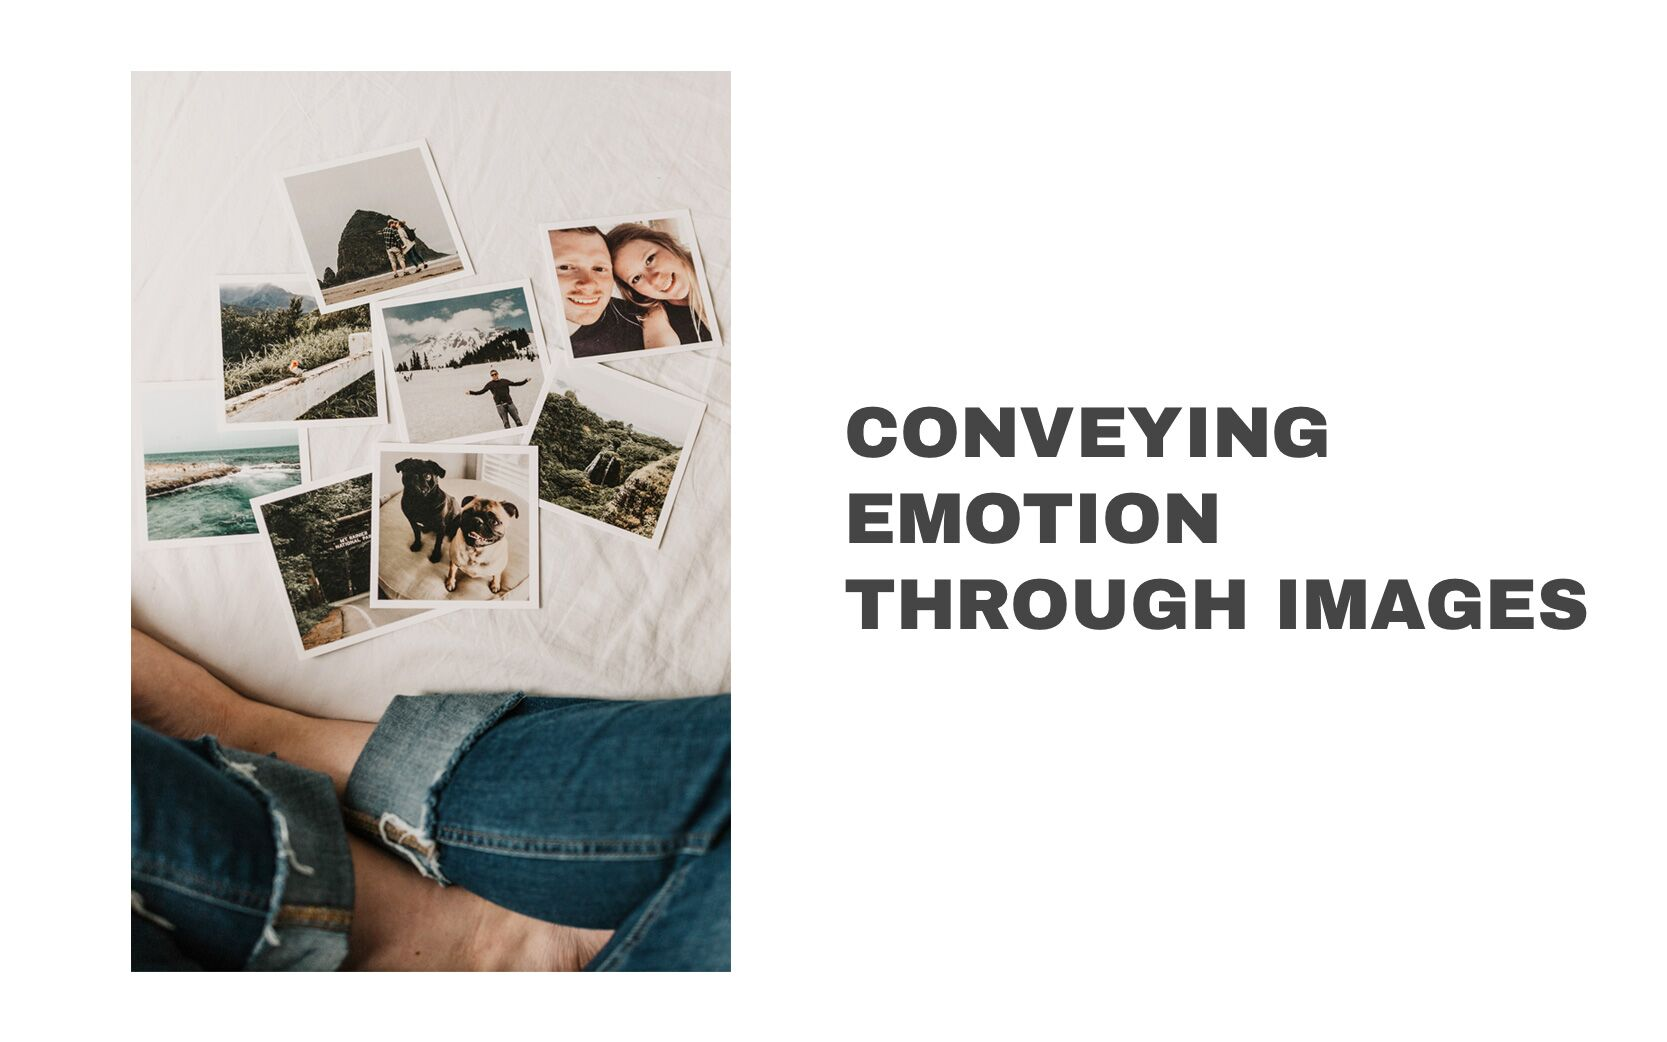 Conveying emotion through images